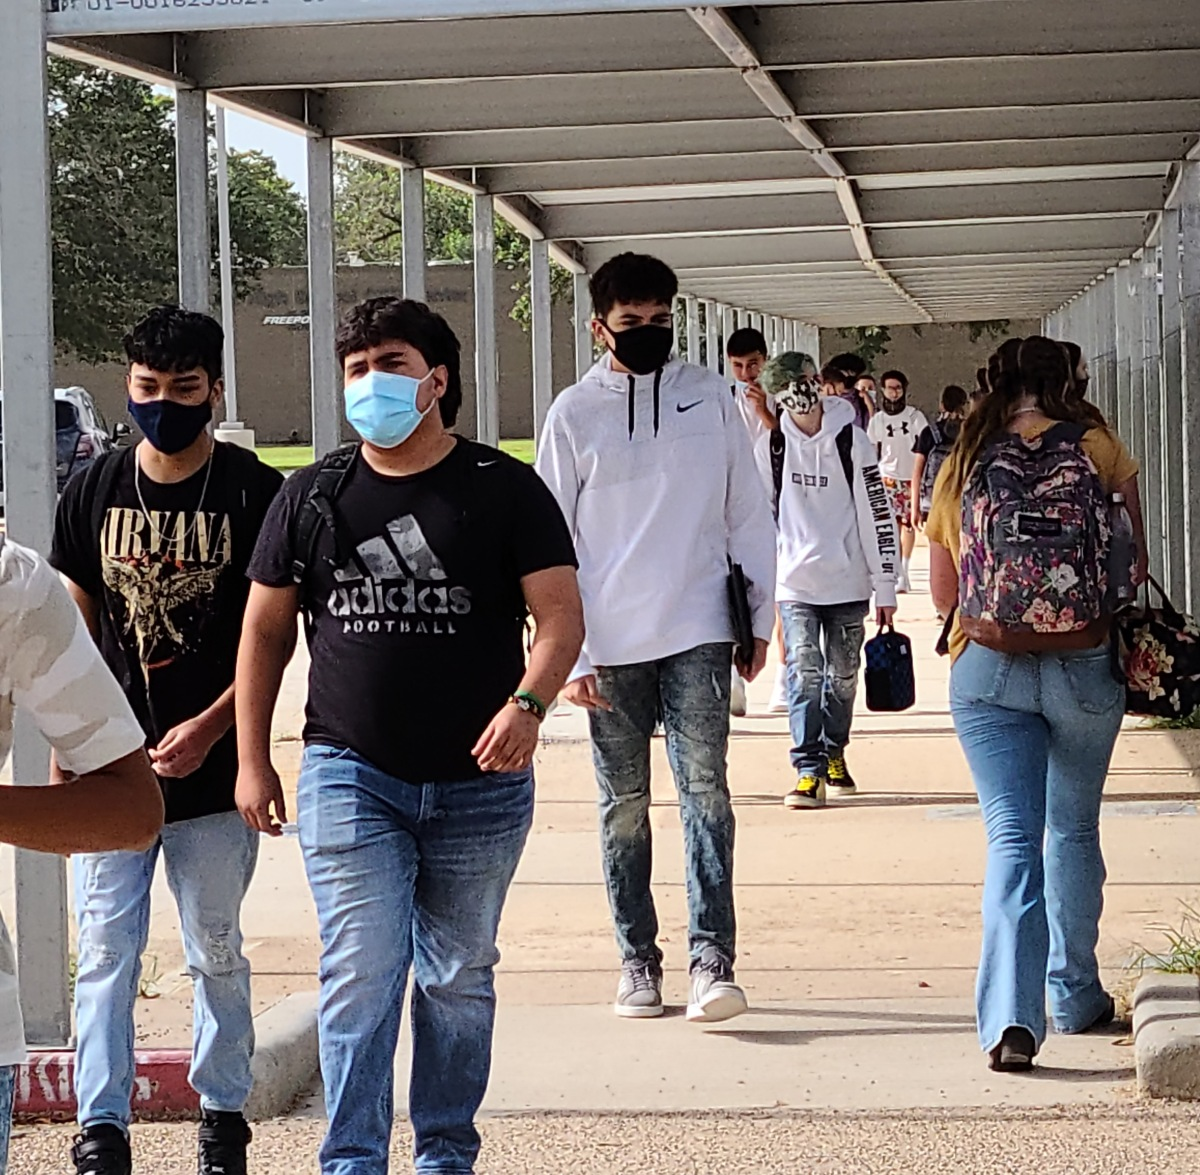 Brazoswood Welcomes Students Back Amid Pandemic andConstruction